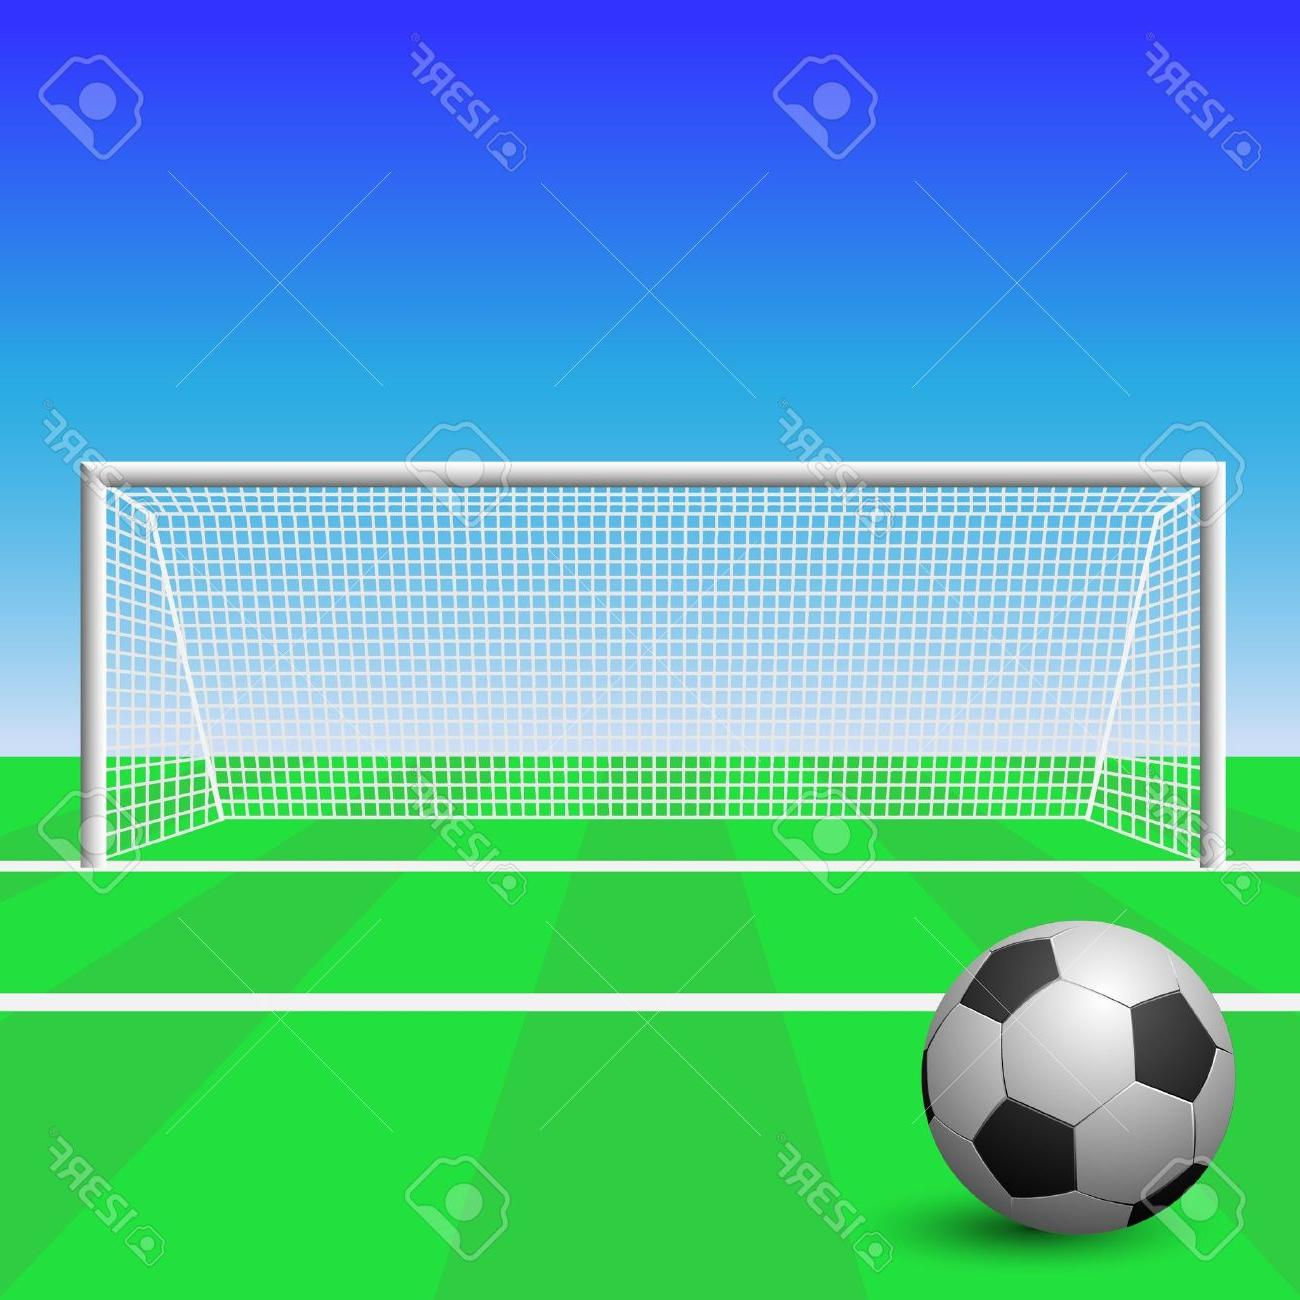 1300x1300 Soccer Goal Drawing Best Free Soccer Goal With Ball Stock Vector